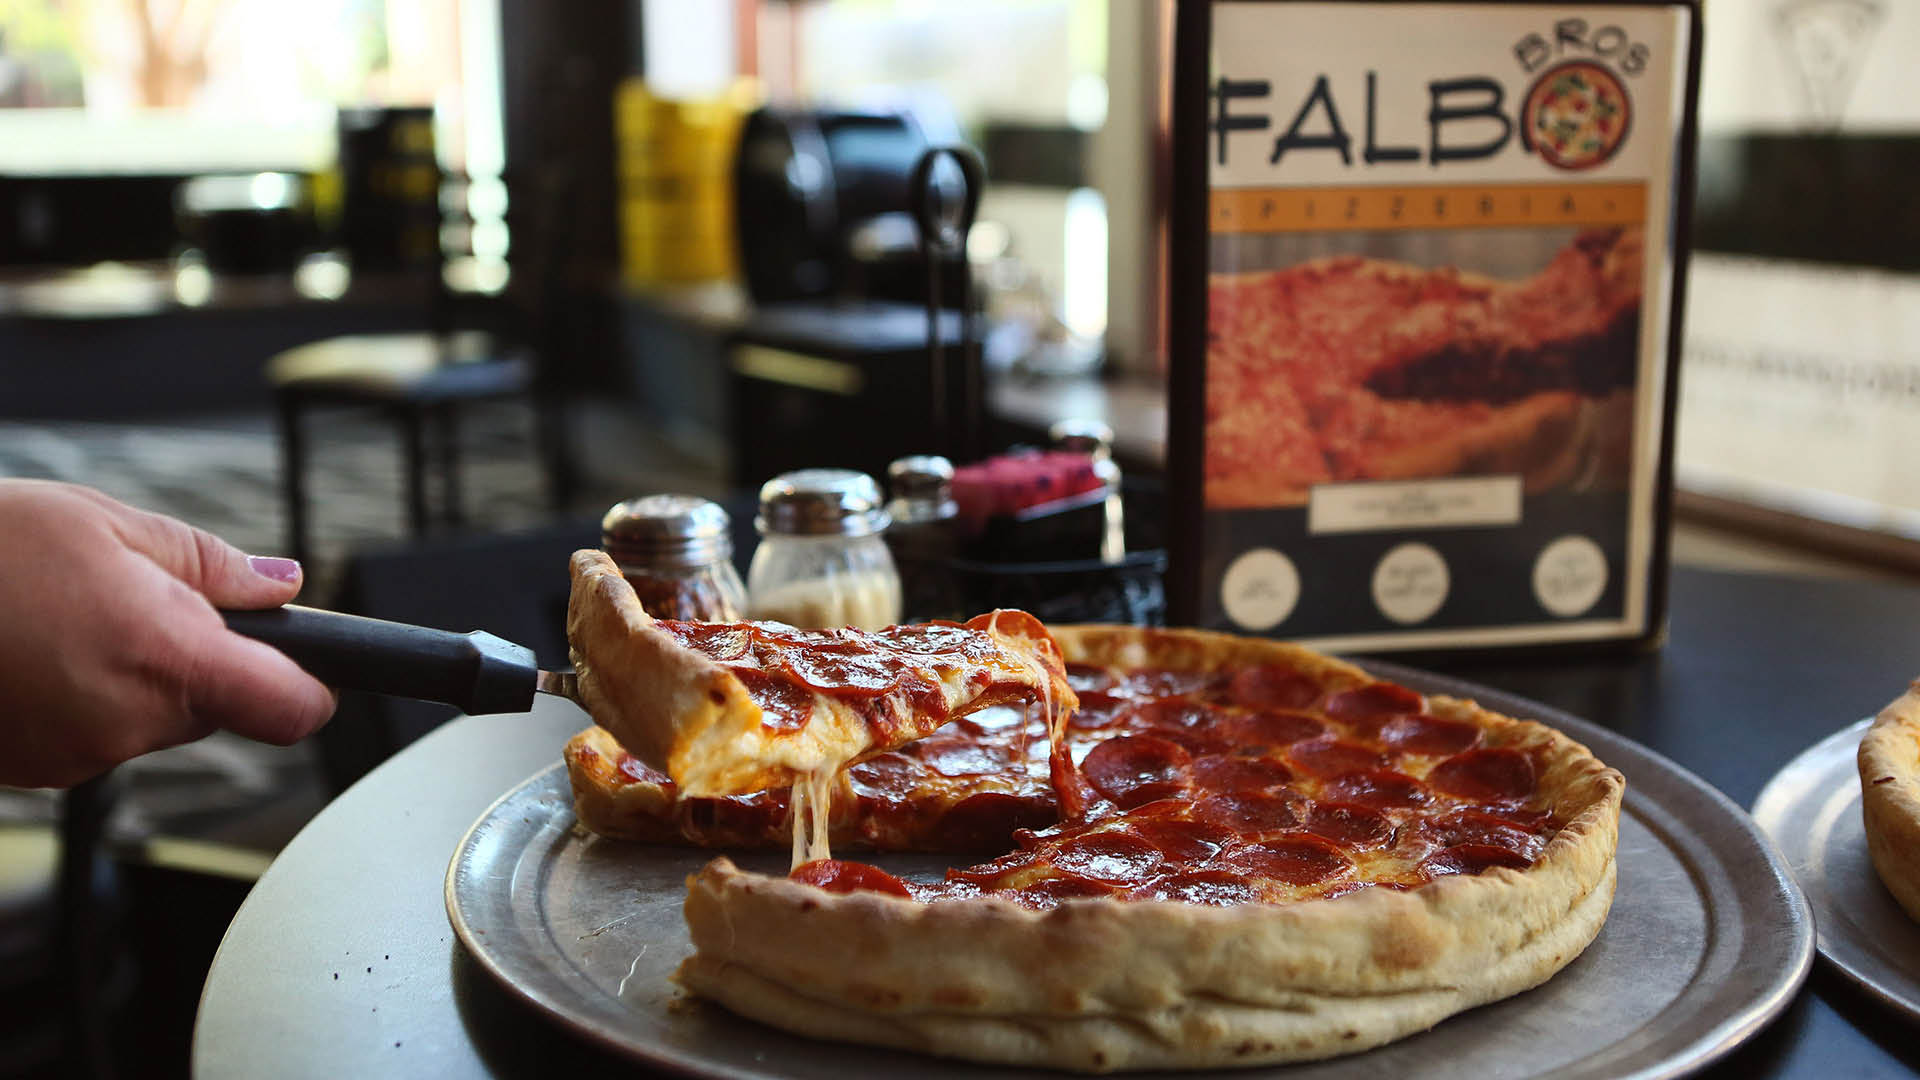 Dine in with us at Falbo Bros Pizzeria at our Monona/McFarland location at 101 River Place